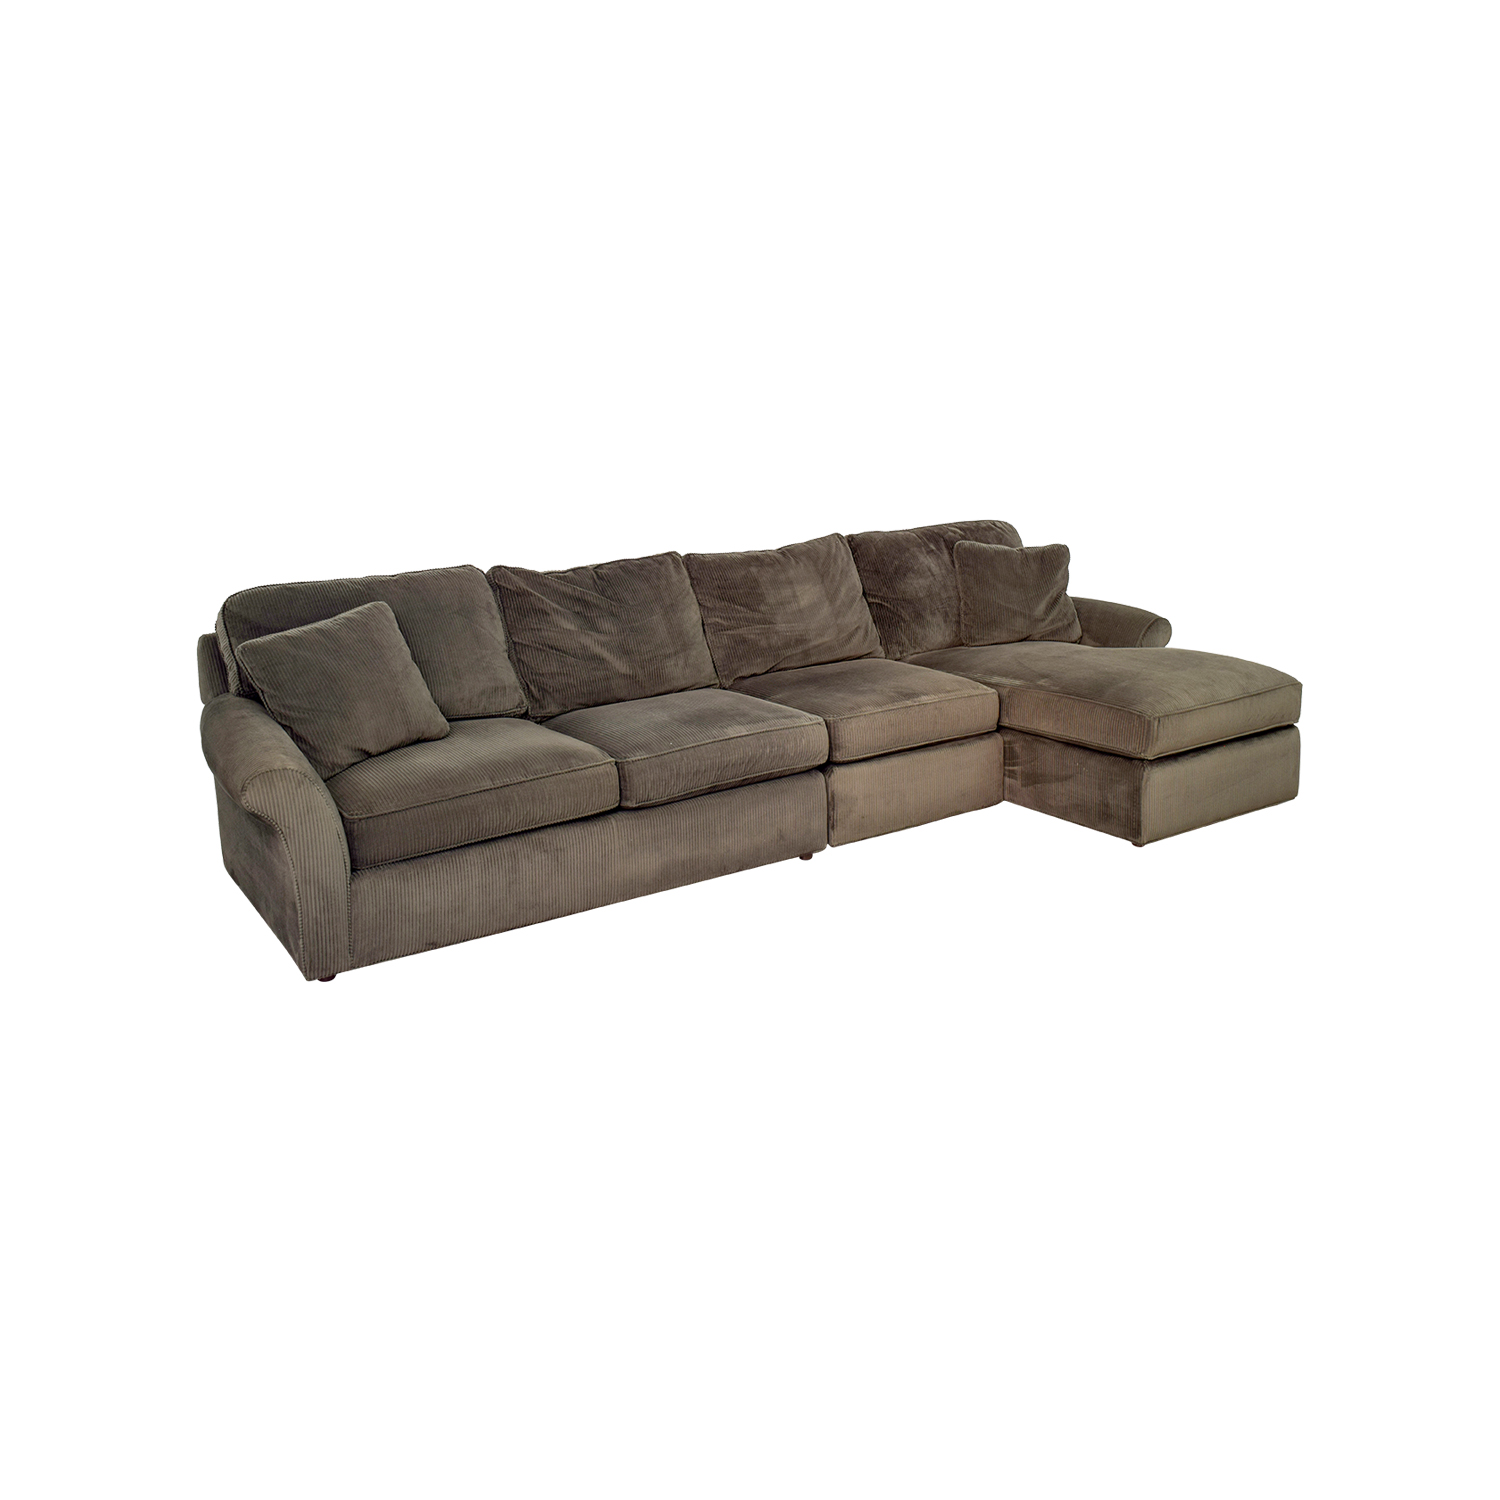 74 Off Macy S Macy S Modern Concepts Charcoal Gray